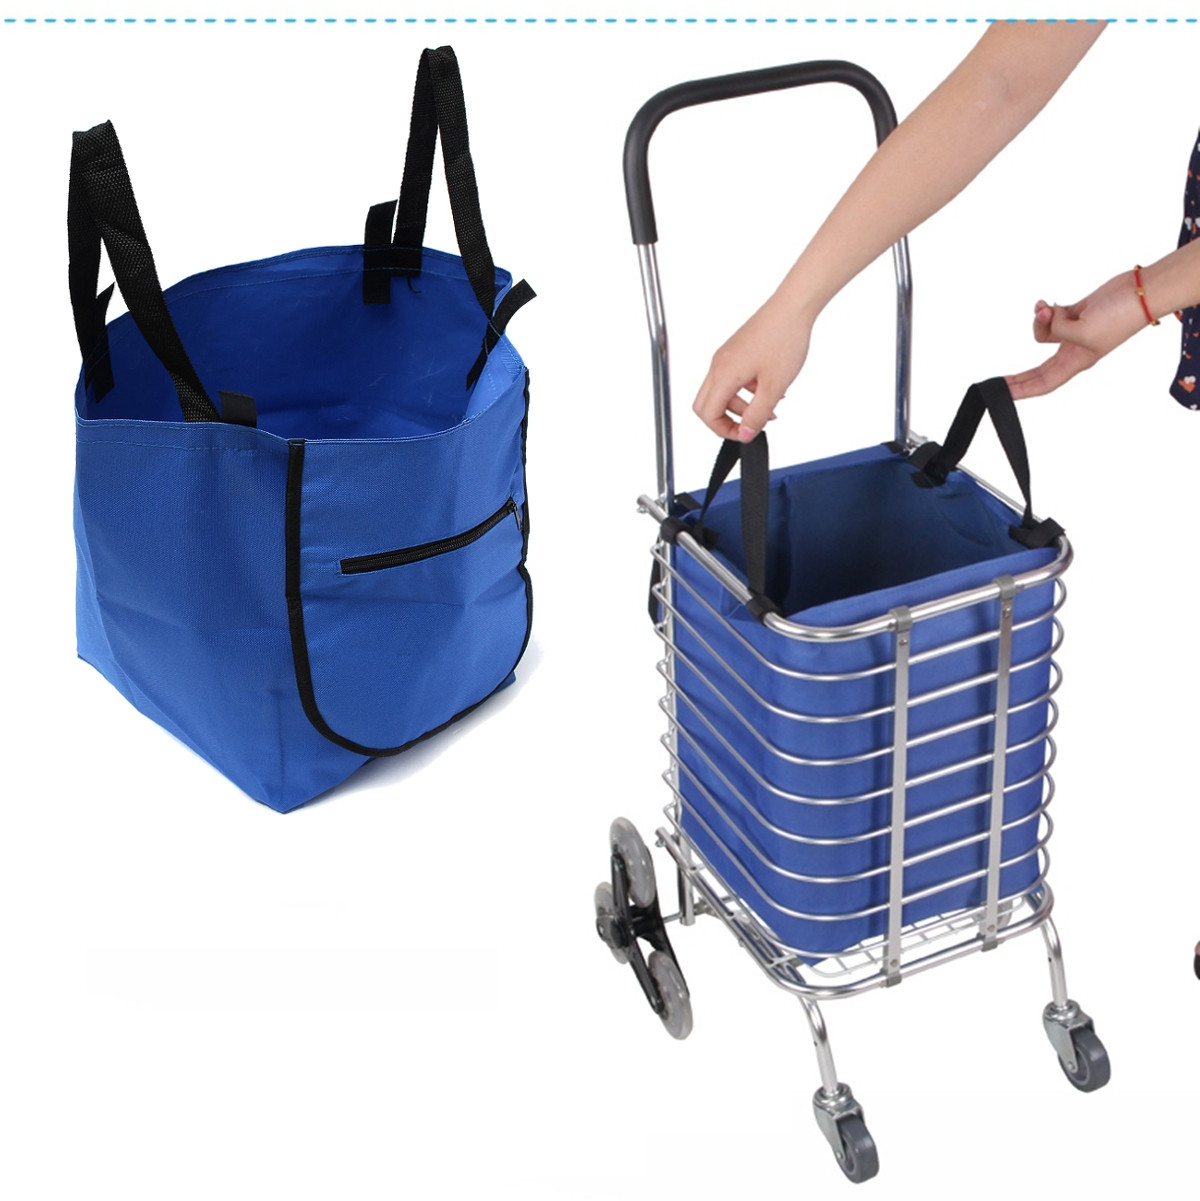 Buy Supermarket Trolley Shopping Organizer Tote Eco Grocery Extend Cart Clips Reusable Foldable Handbag